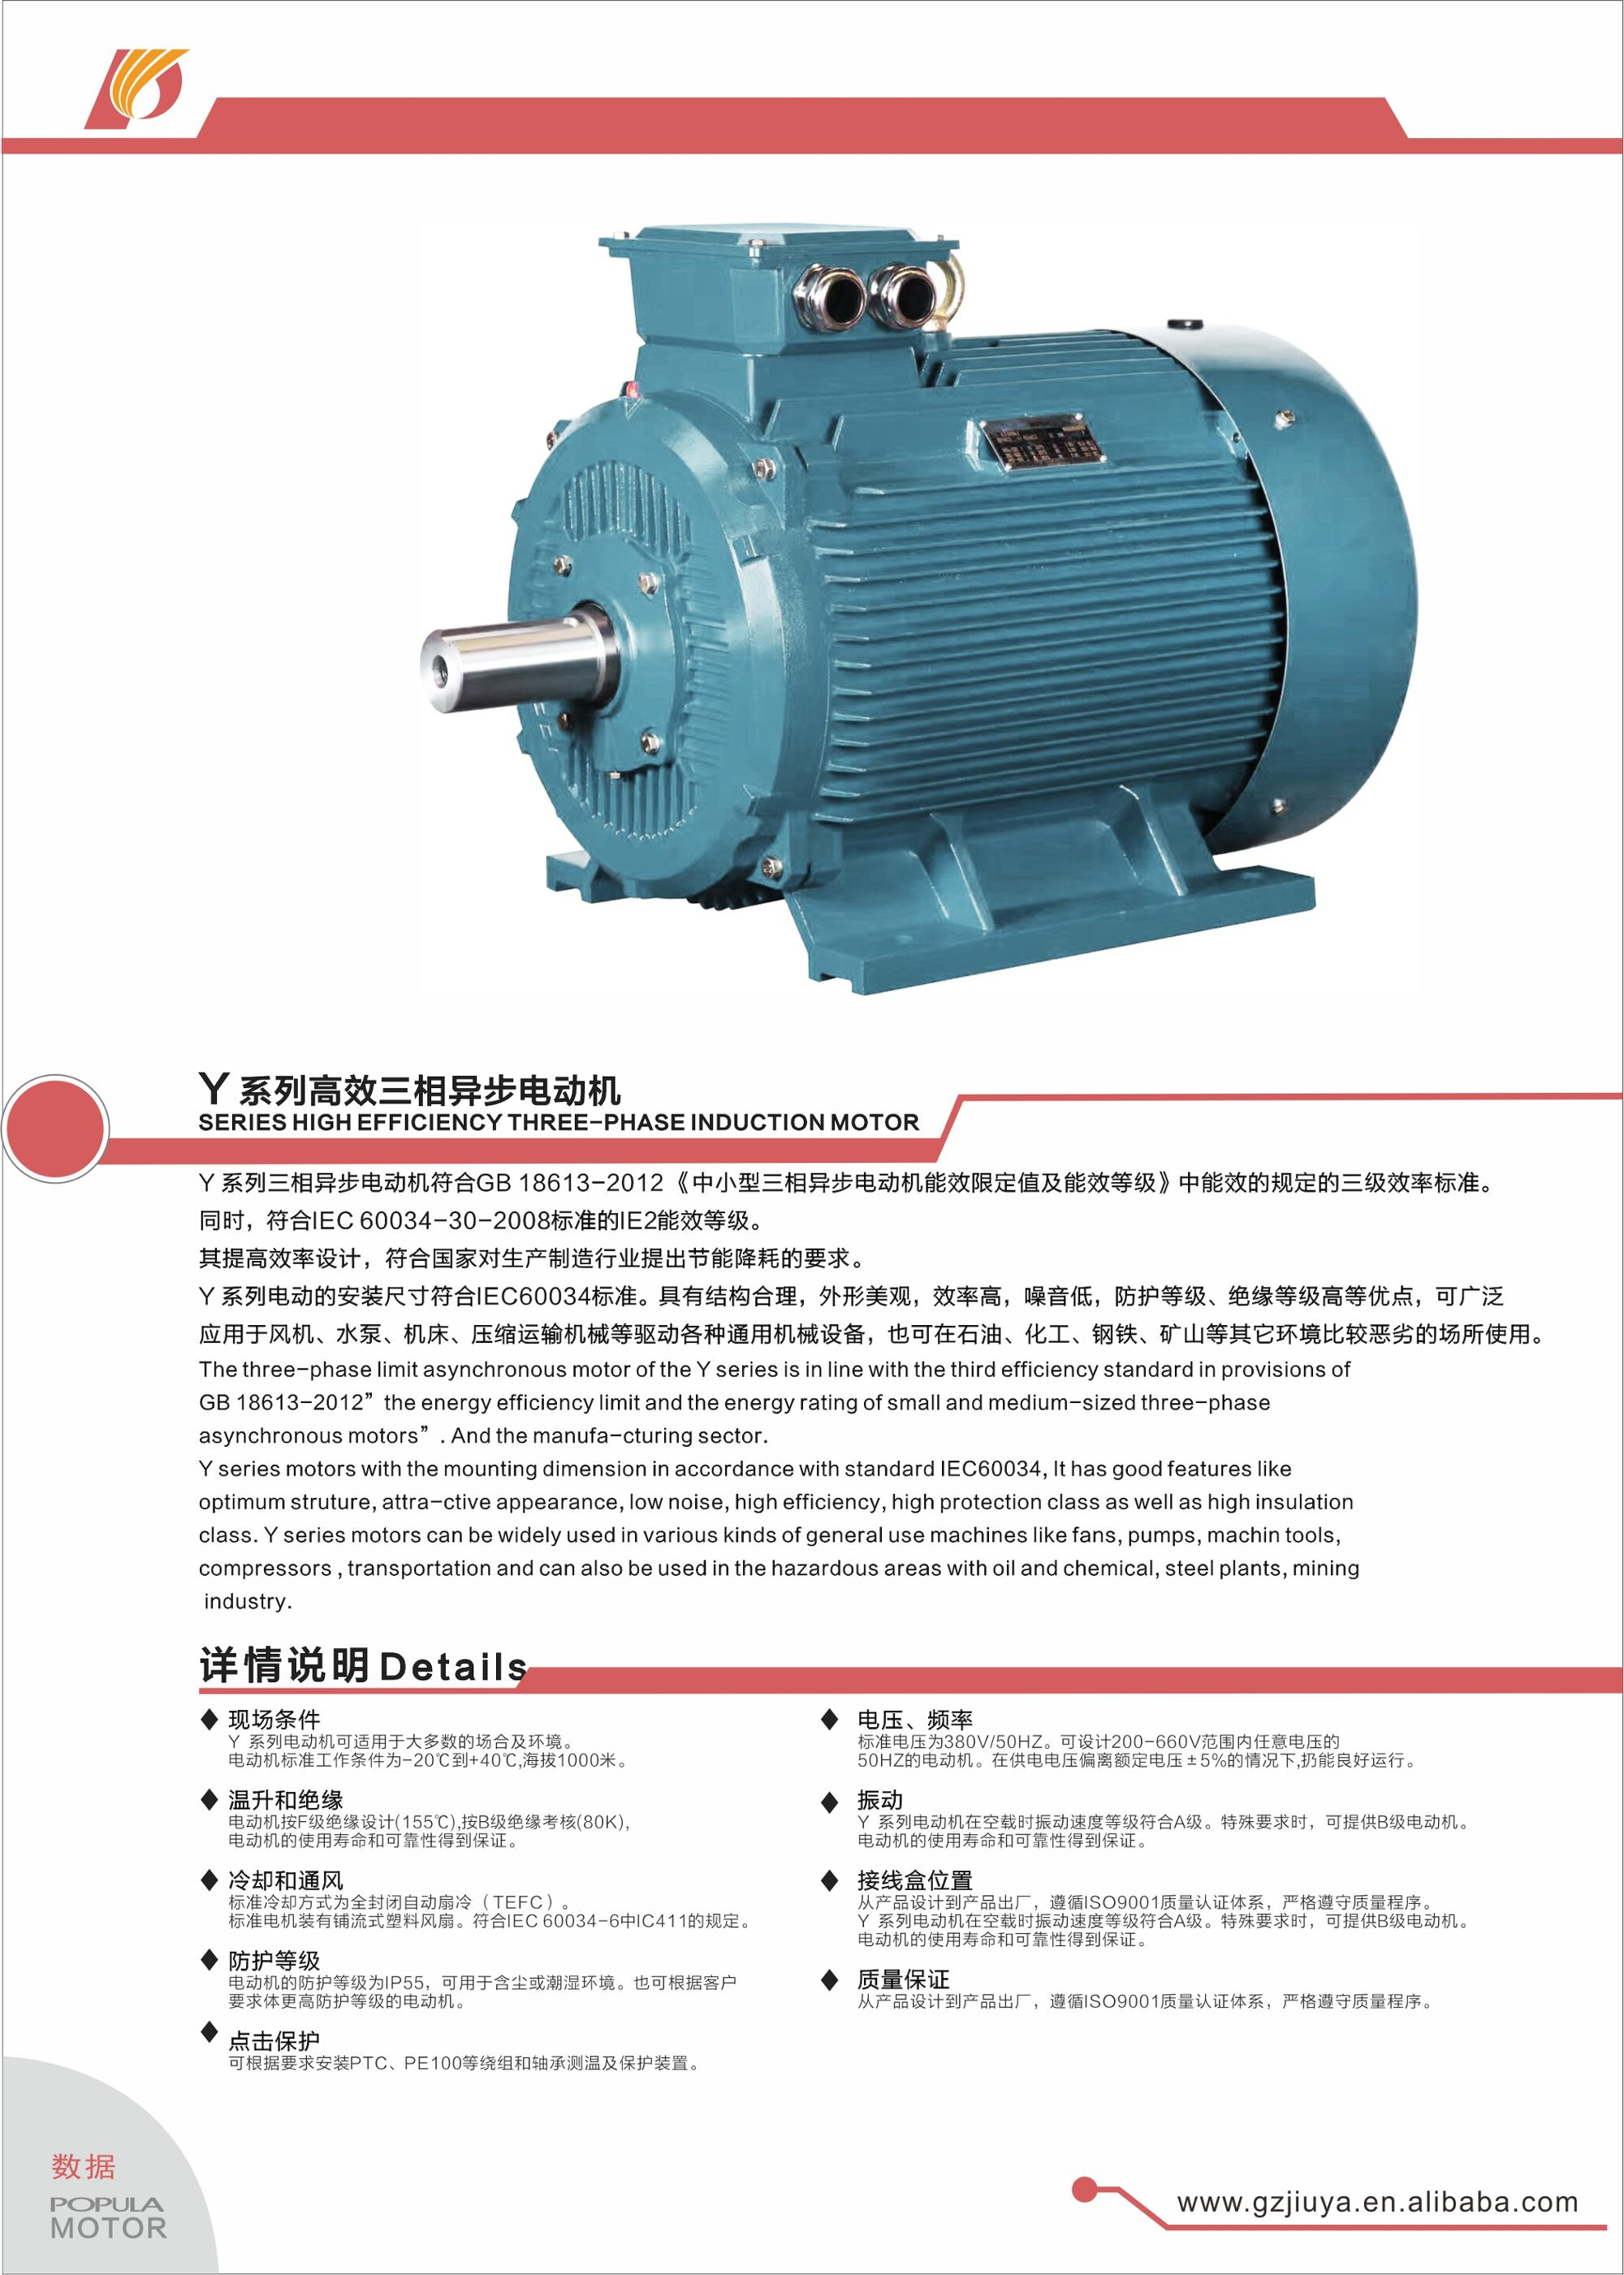 Y Series Ac Motor For Three Phase 150kw Induction Motor For ...